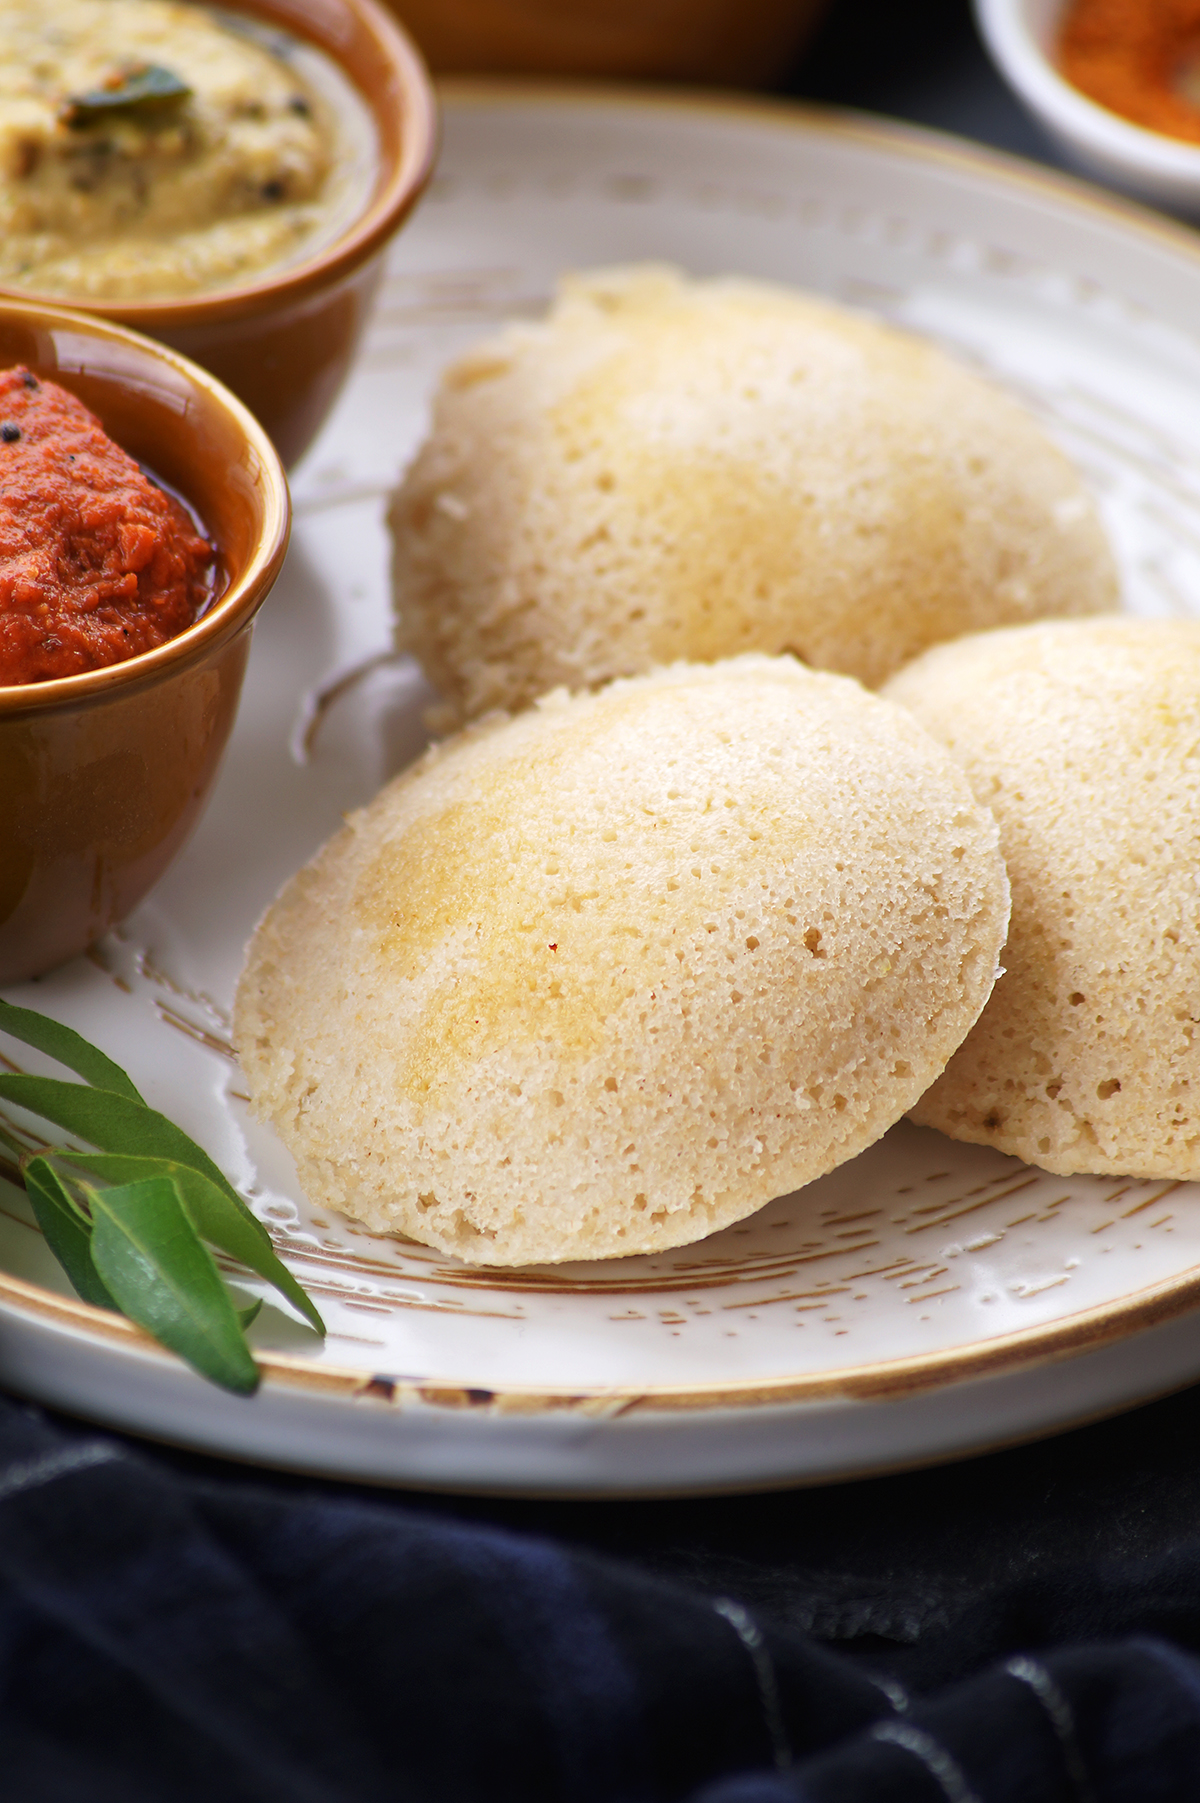 soft south indian oats idli served on a white plate and topped with ghee.